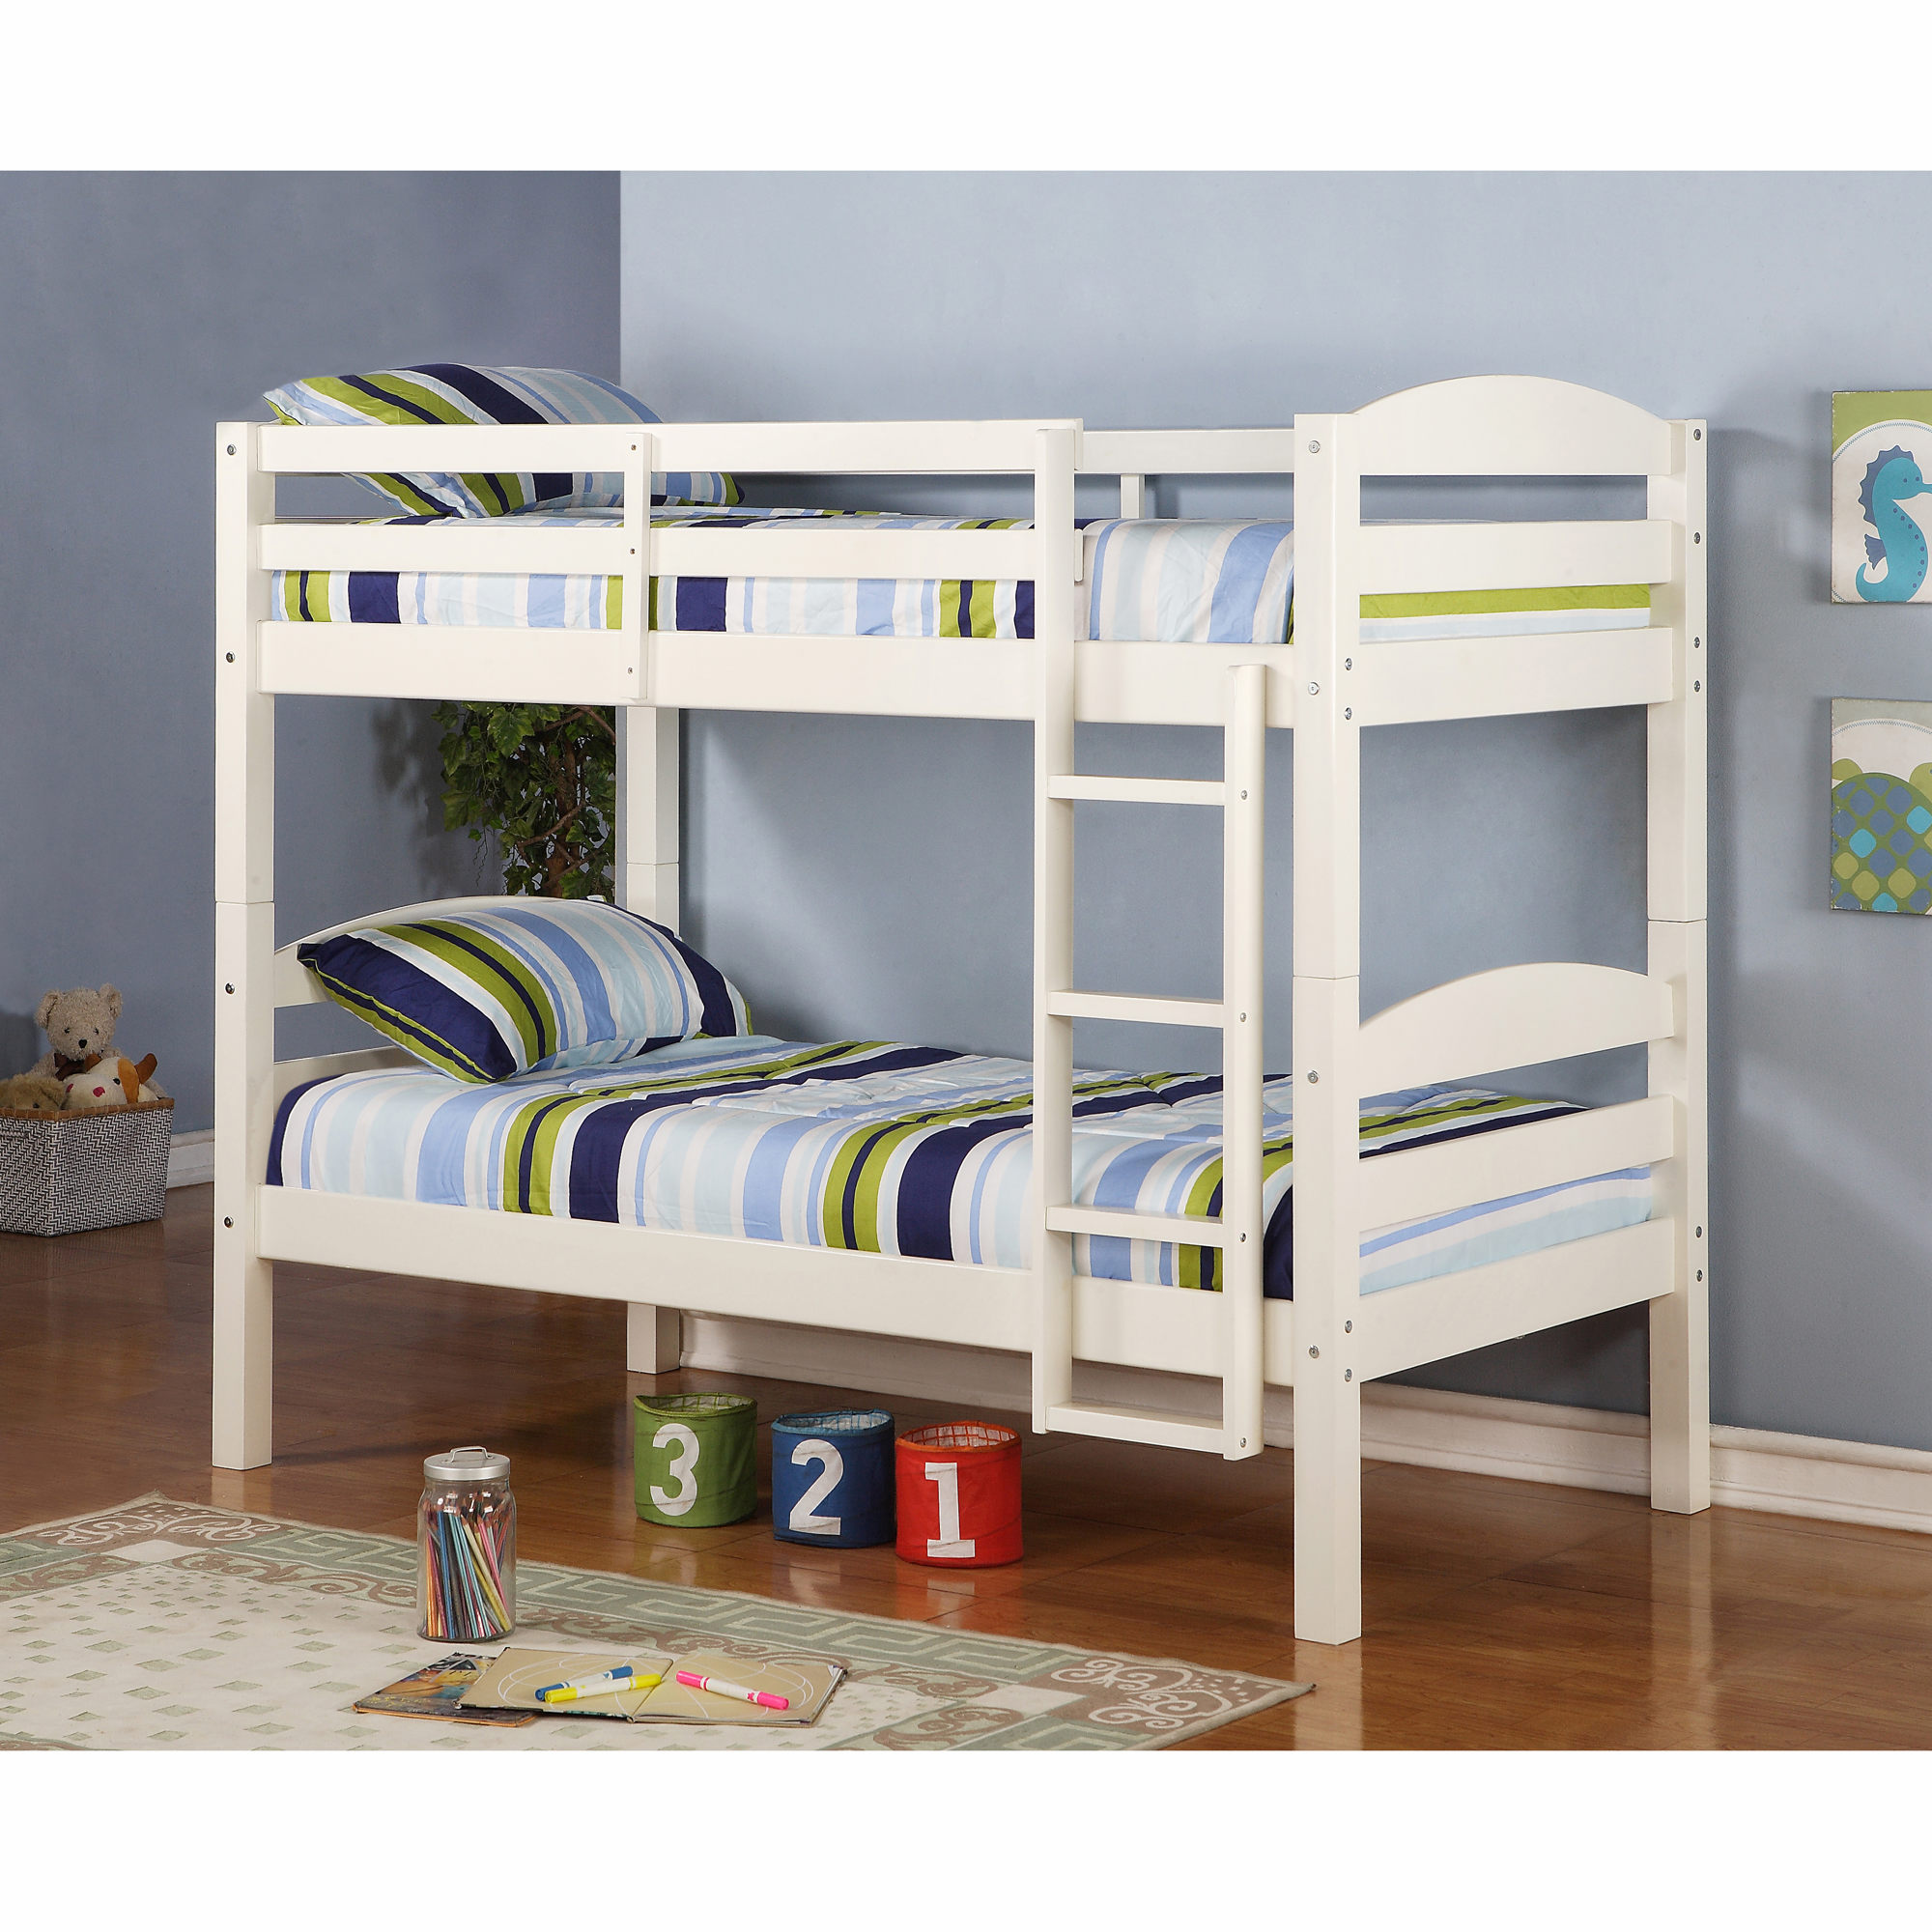 how (and why) i built my kids a bunk bed instead of buying one